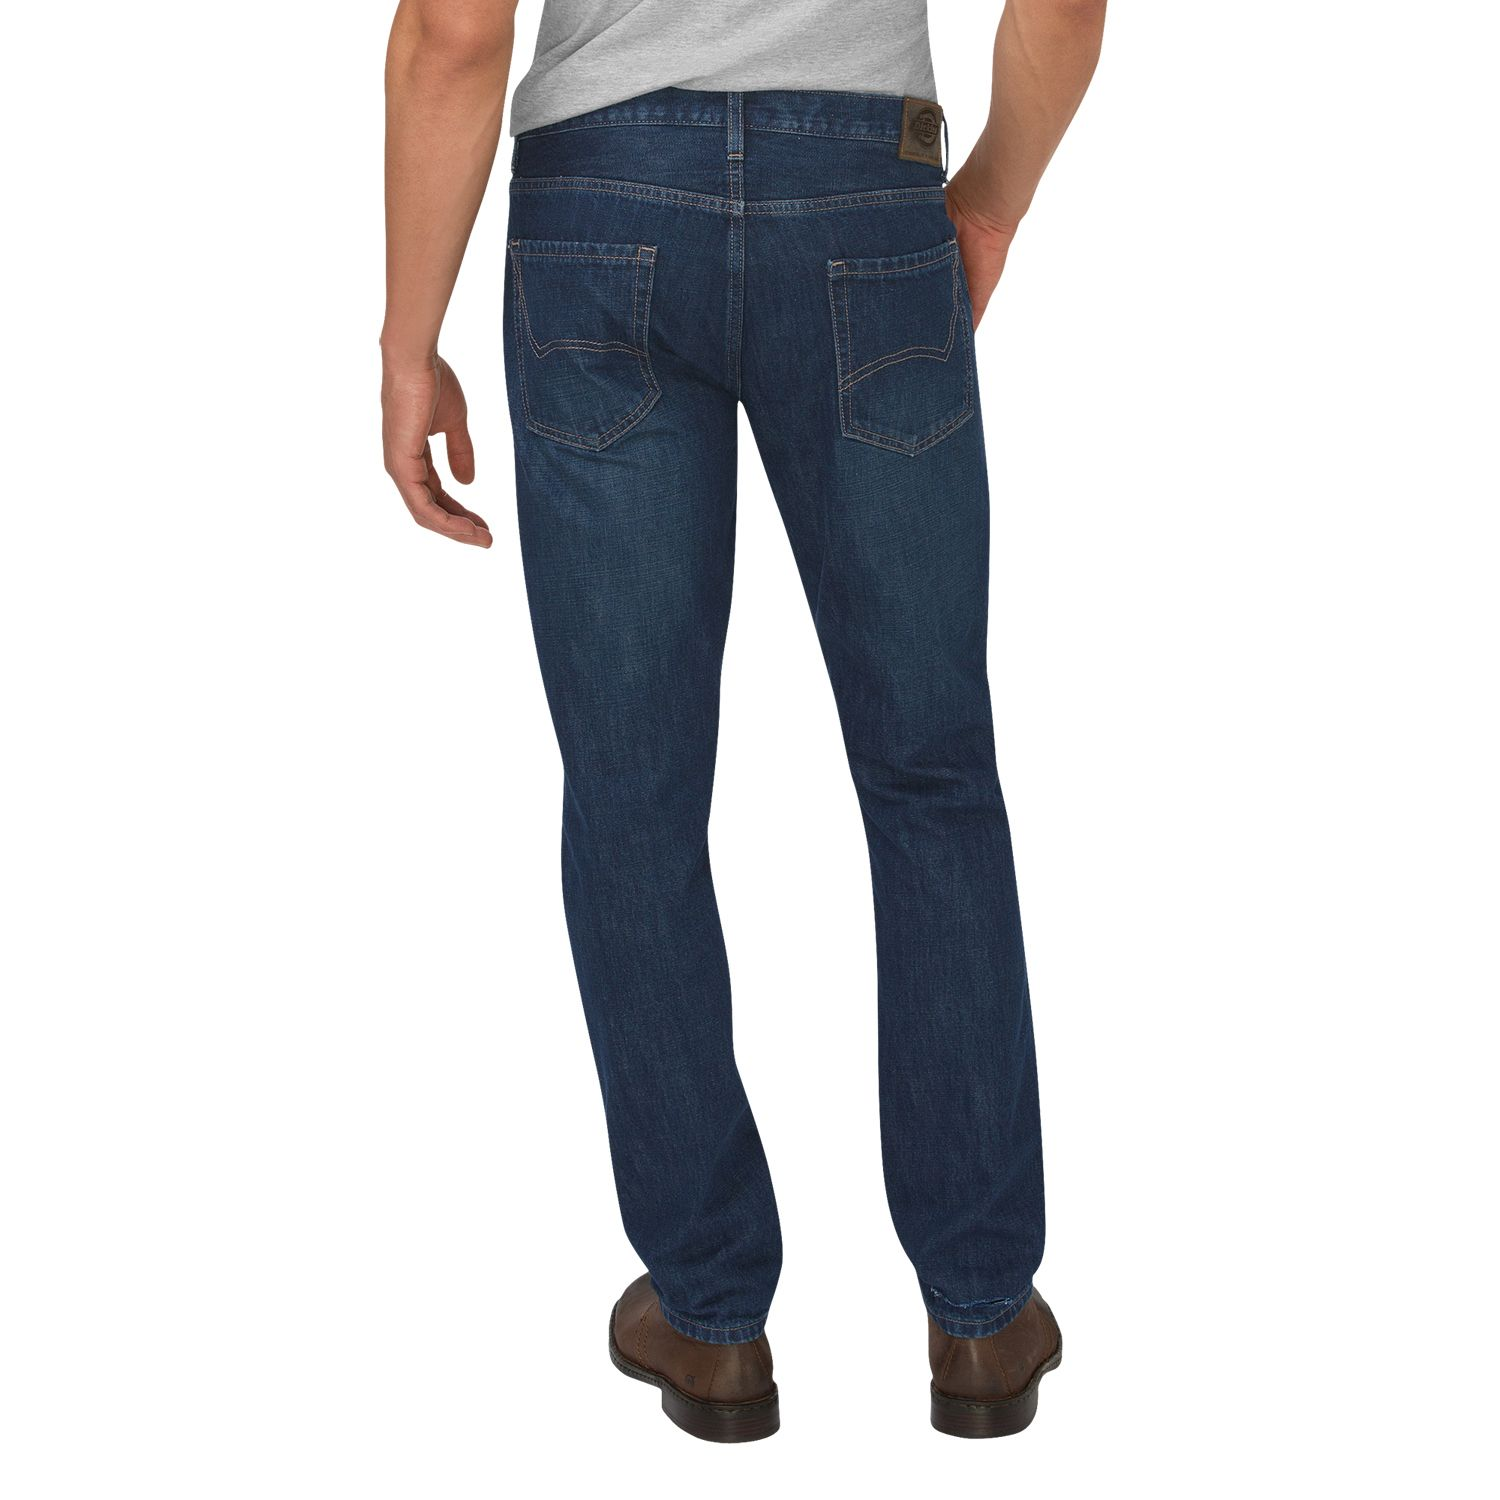 378253f8d6f Mens Dickies Slim Tapered Bottoms